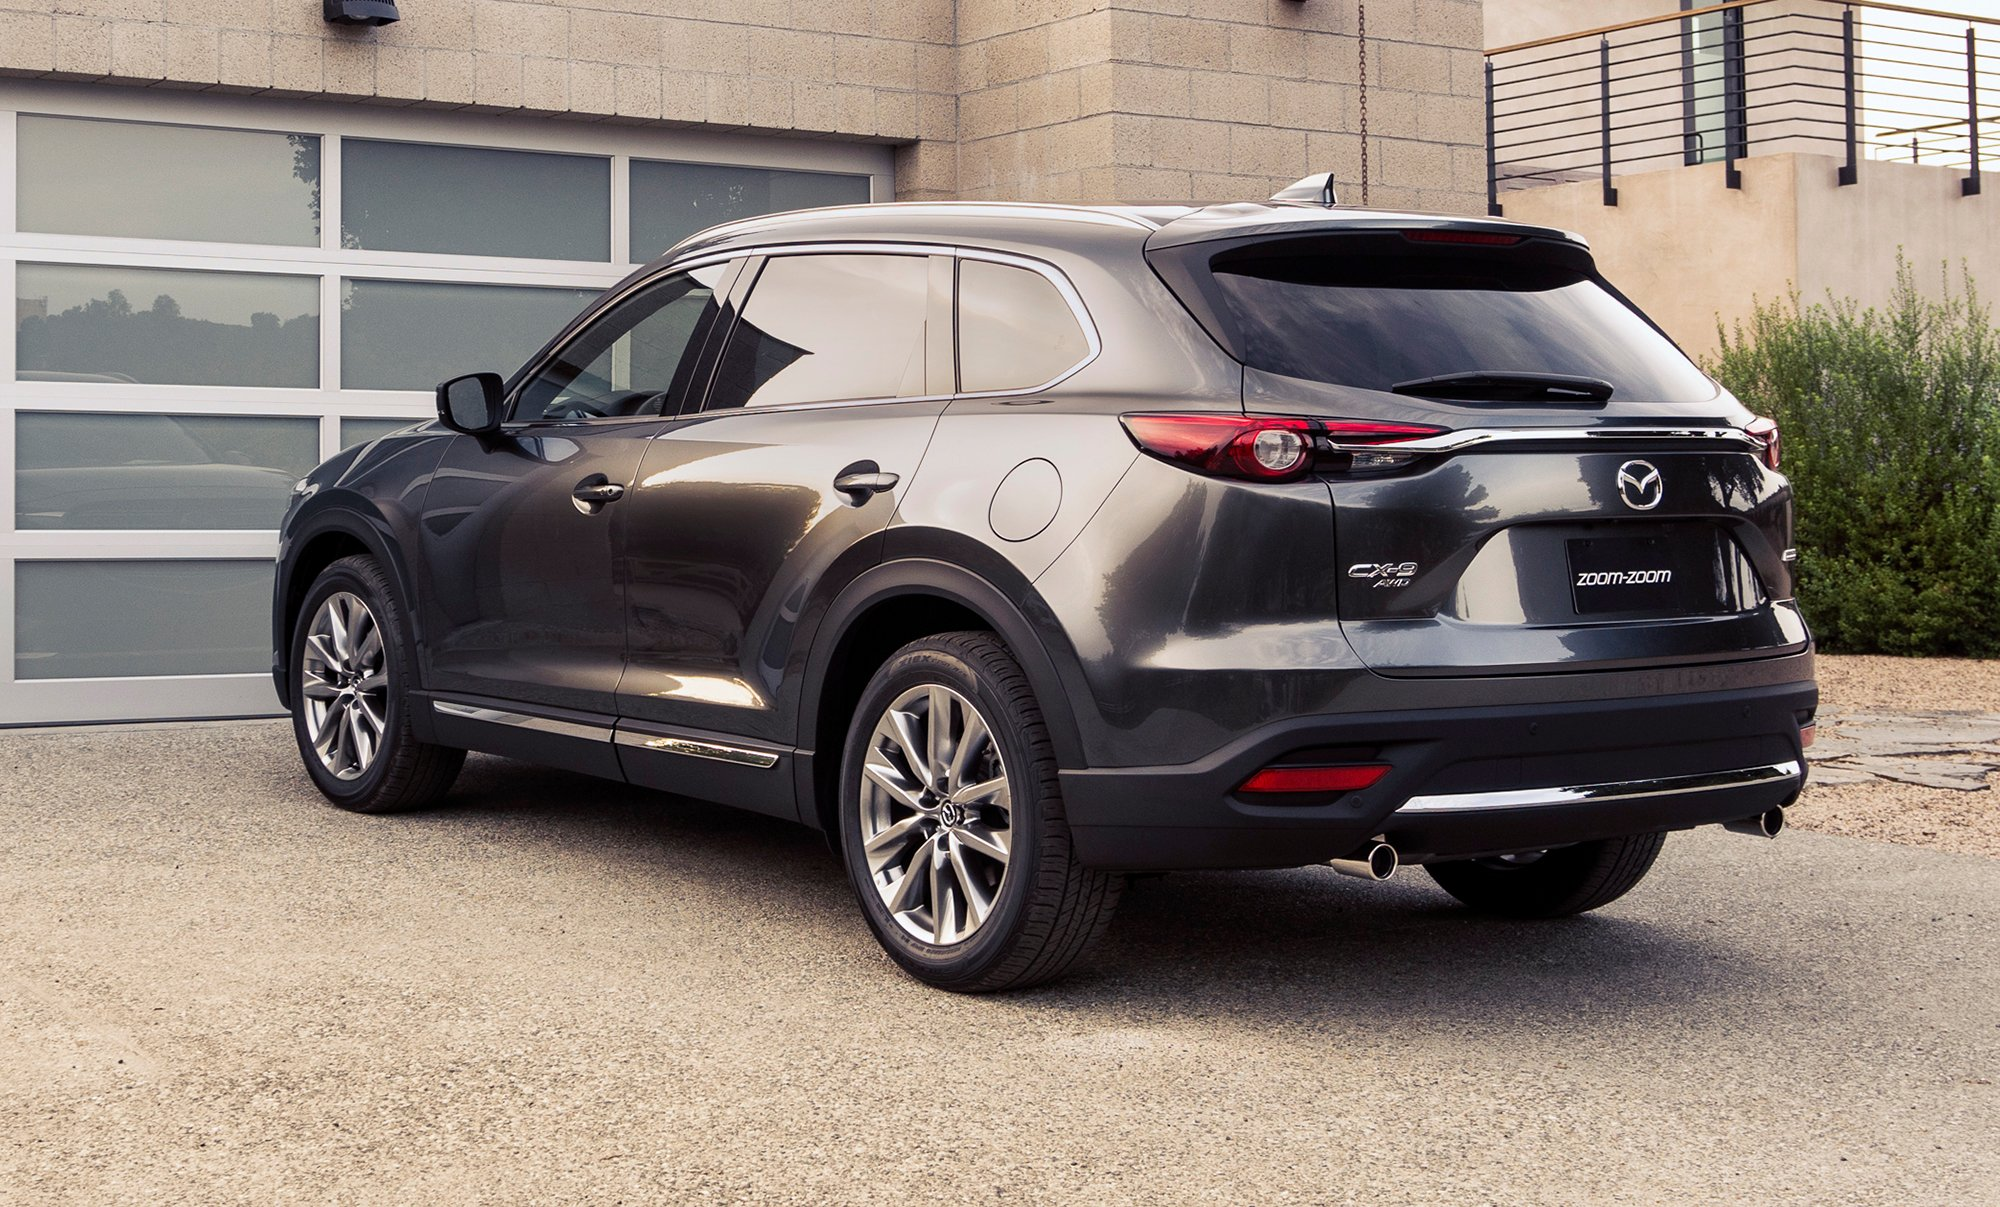 2016 mazda cx 9 revealed with new 2 5 turbo engine photos caradvice. Black Bedroom Furniture Sets. Home Design Ideas